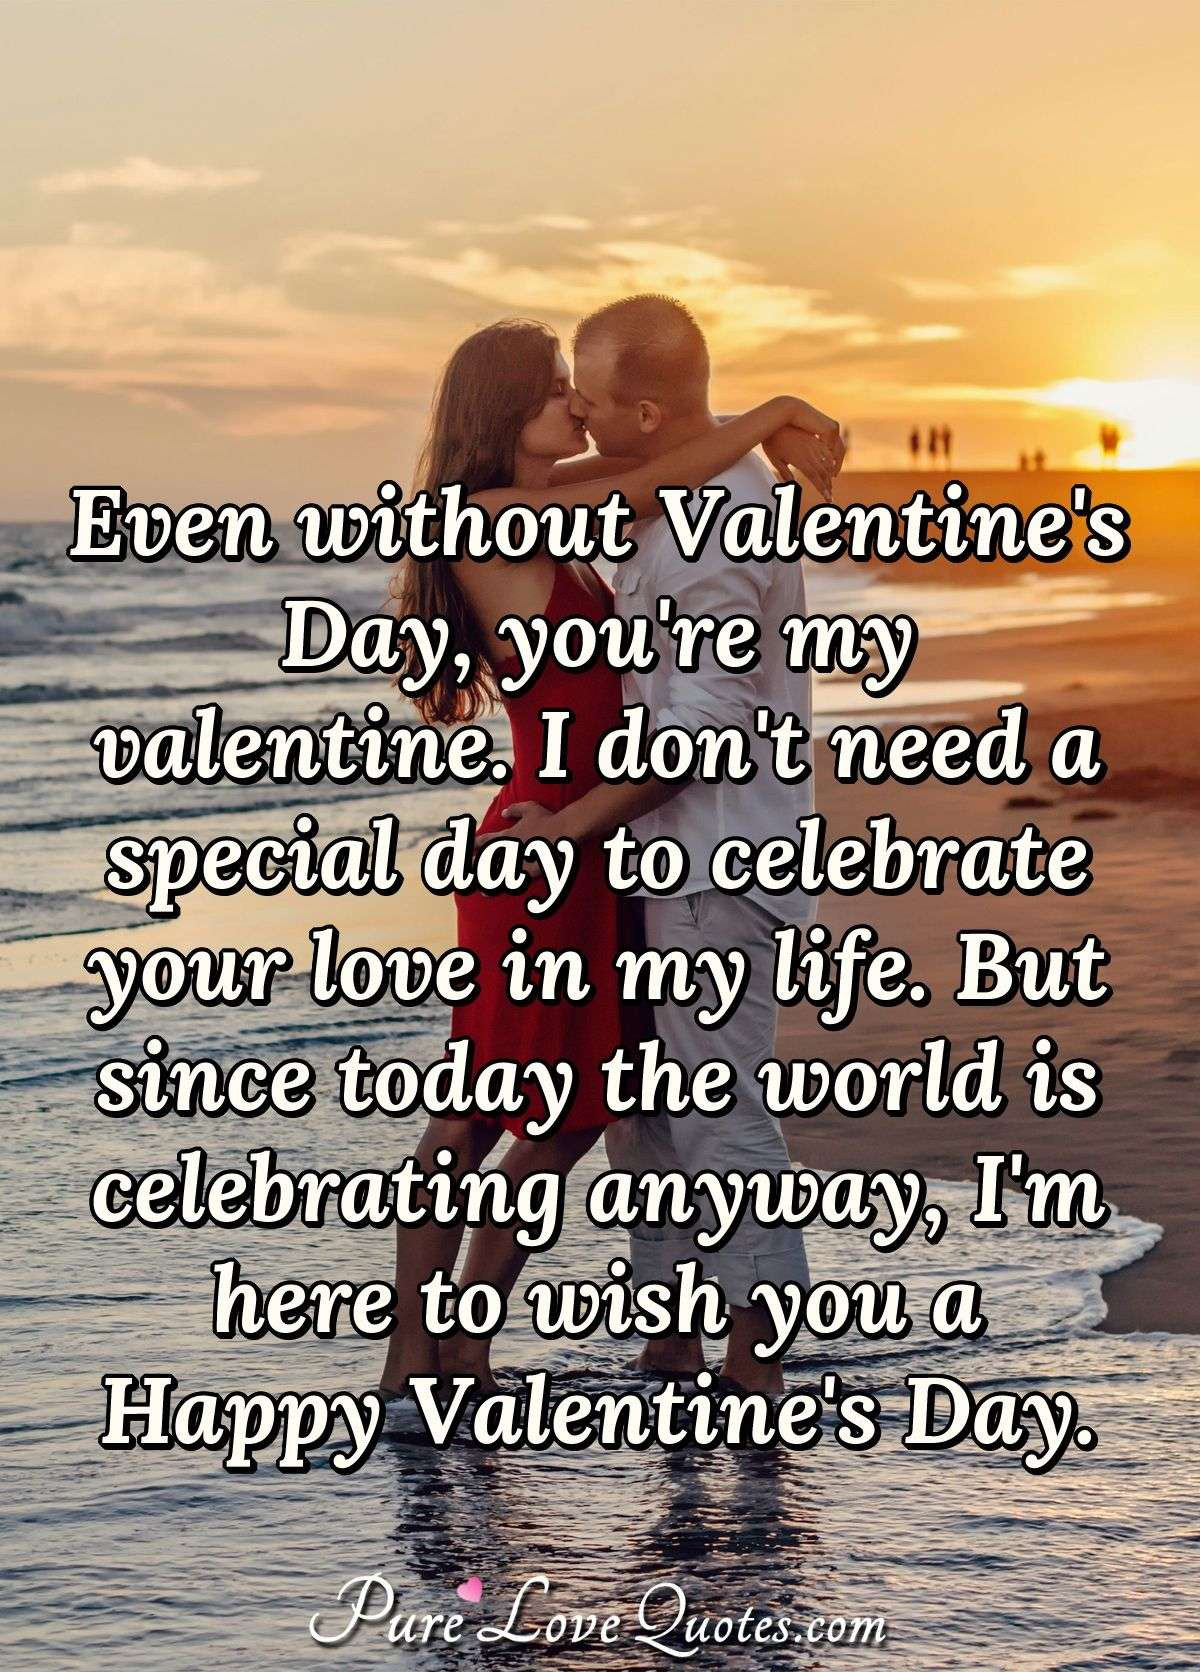 Even without Valentine's Day, you're my valentine. I don't need a special day to celebrate your love in my life. But since today the world is celebrating anyway, I'm here to wish you a Happy Valentine's Day. - Anonymous